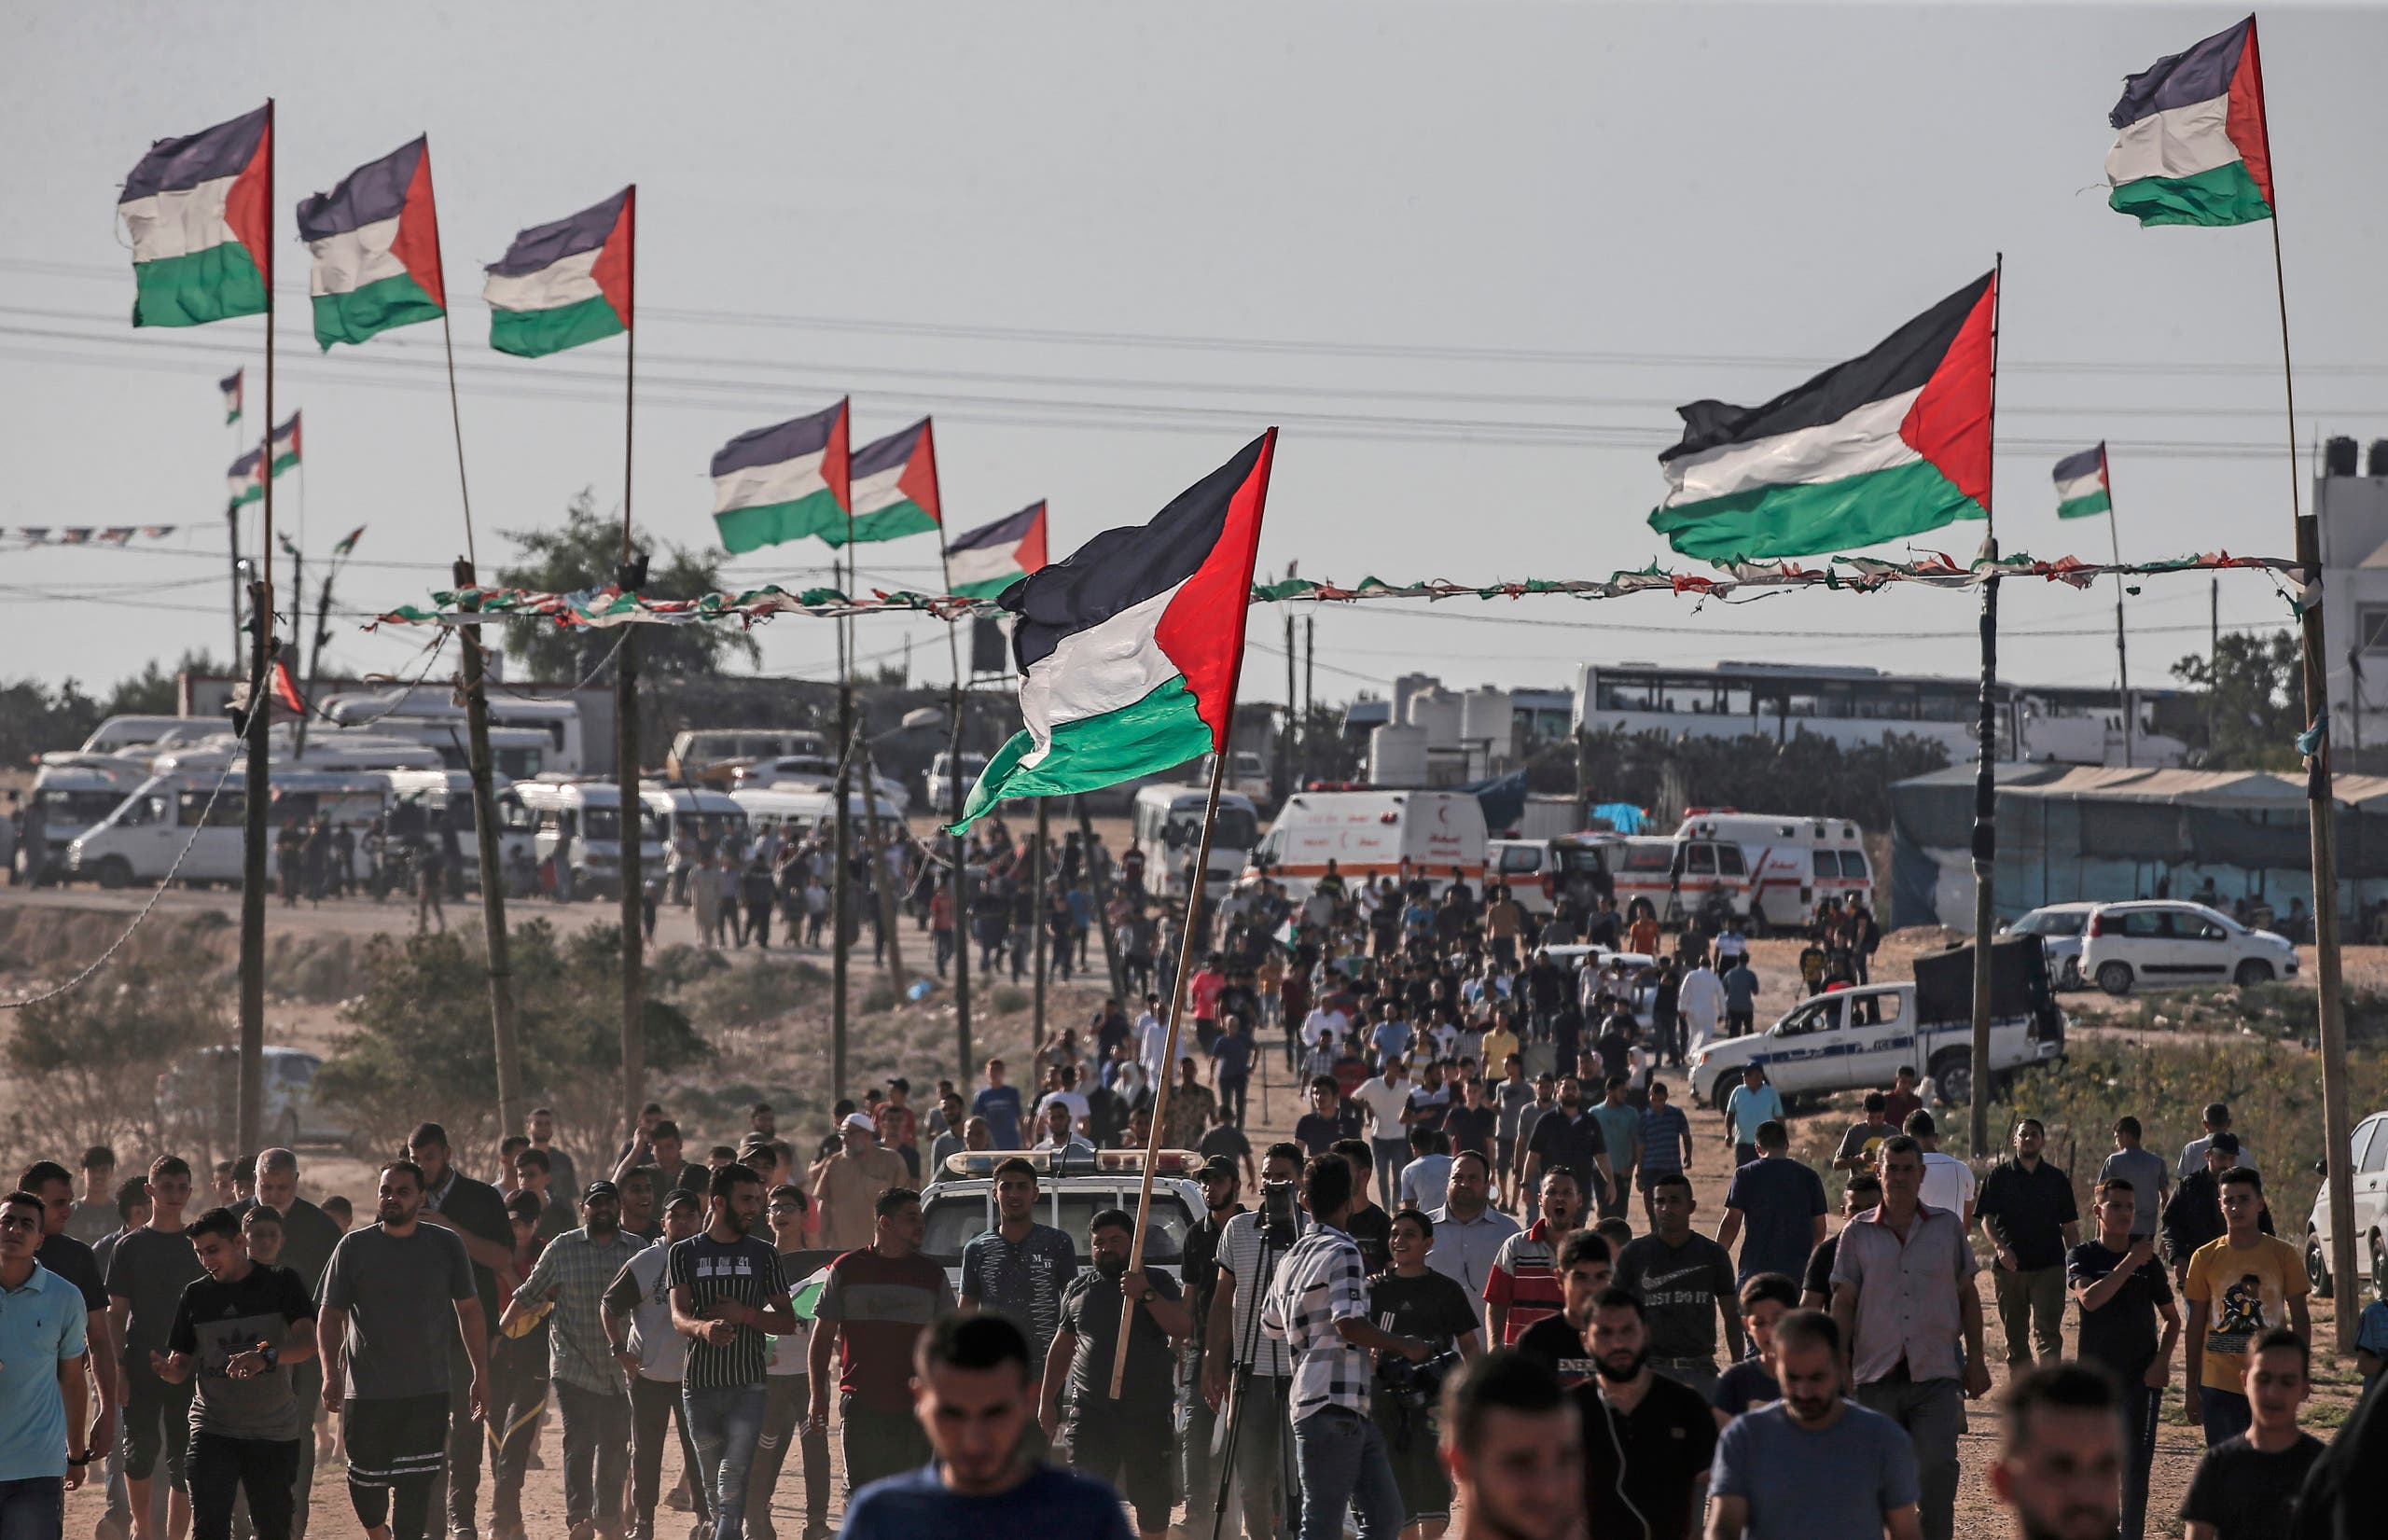 Palestinians demonstrate near the fence along the border with Israel in the eastern Gaza Strip on August 16, 2019.